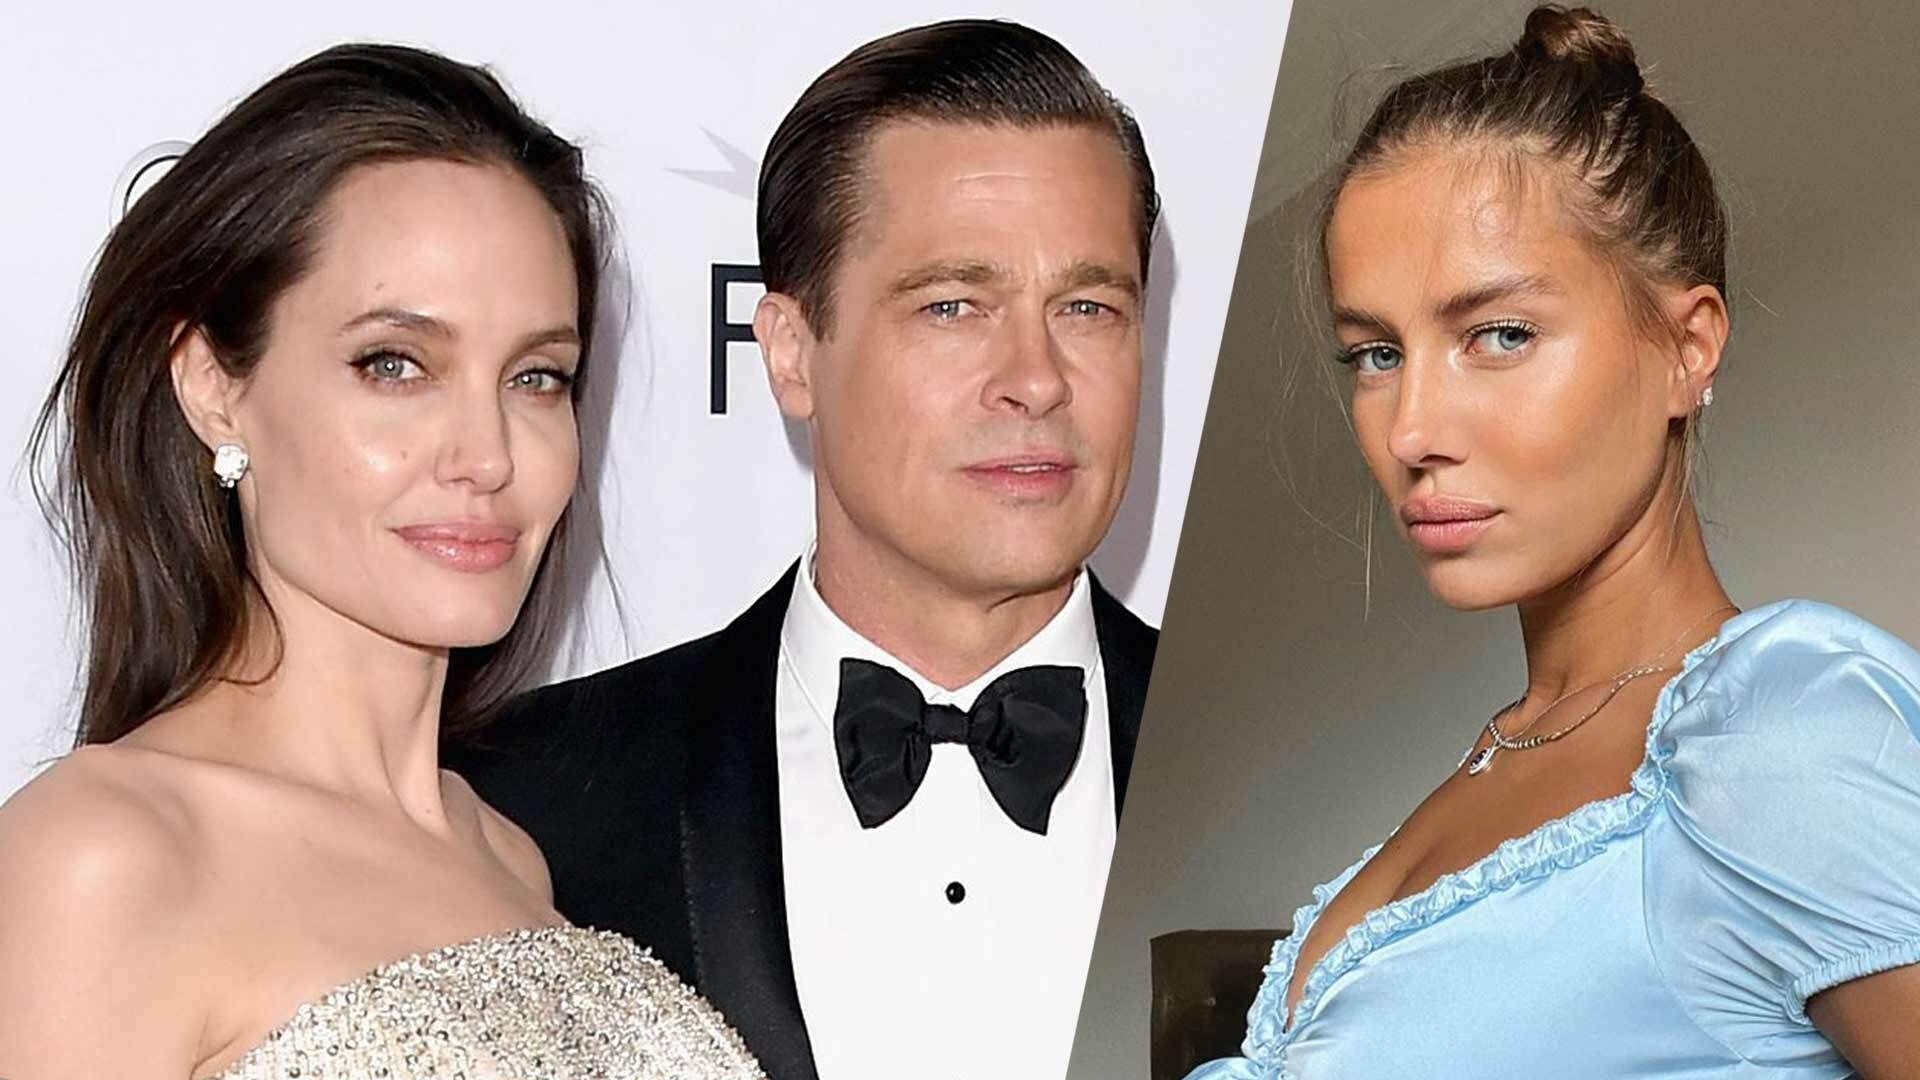 Brad Pitt Angelina Jolie Back Together To Sell Rosé Amid His New Romance With 27 Year Old Model